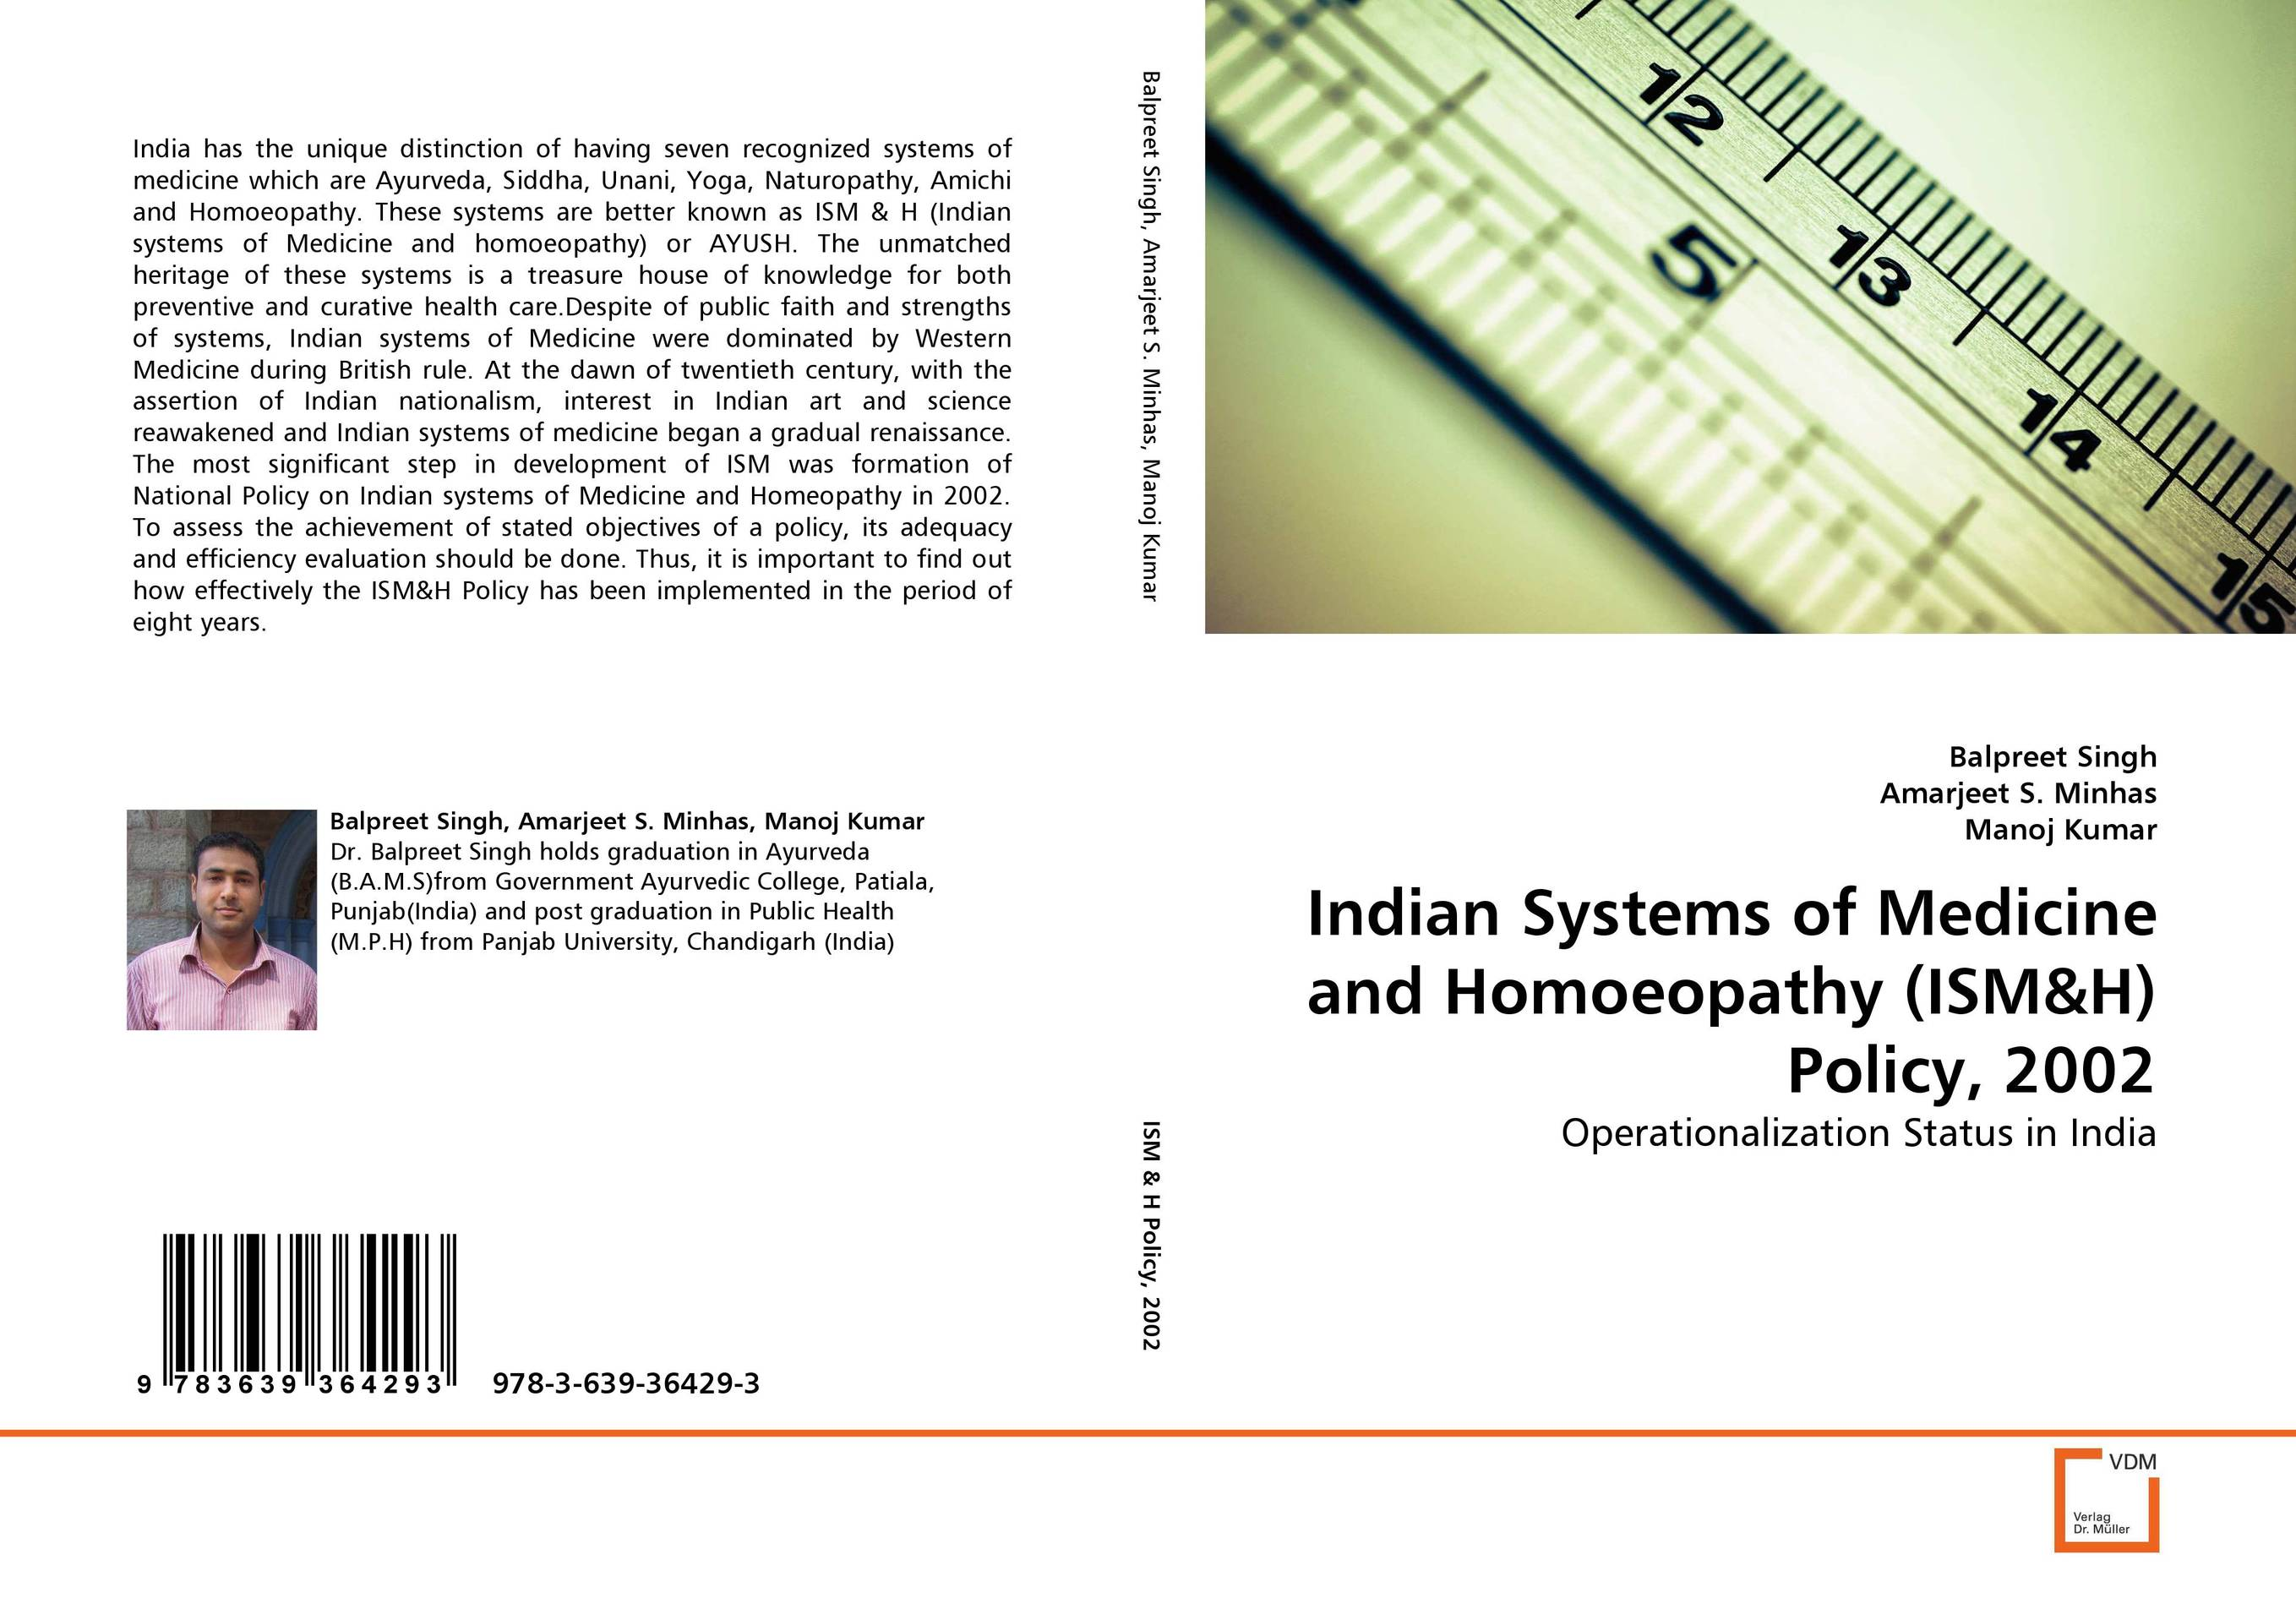 Indian Systems of Medicine and Homoeopathy (ISM&H) Policy, 2002 william h welch and the rise of modern medicine